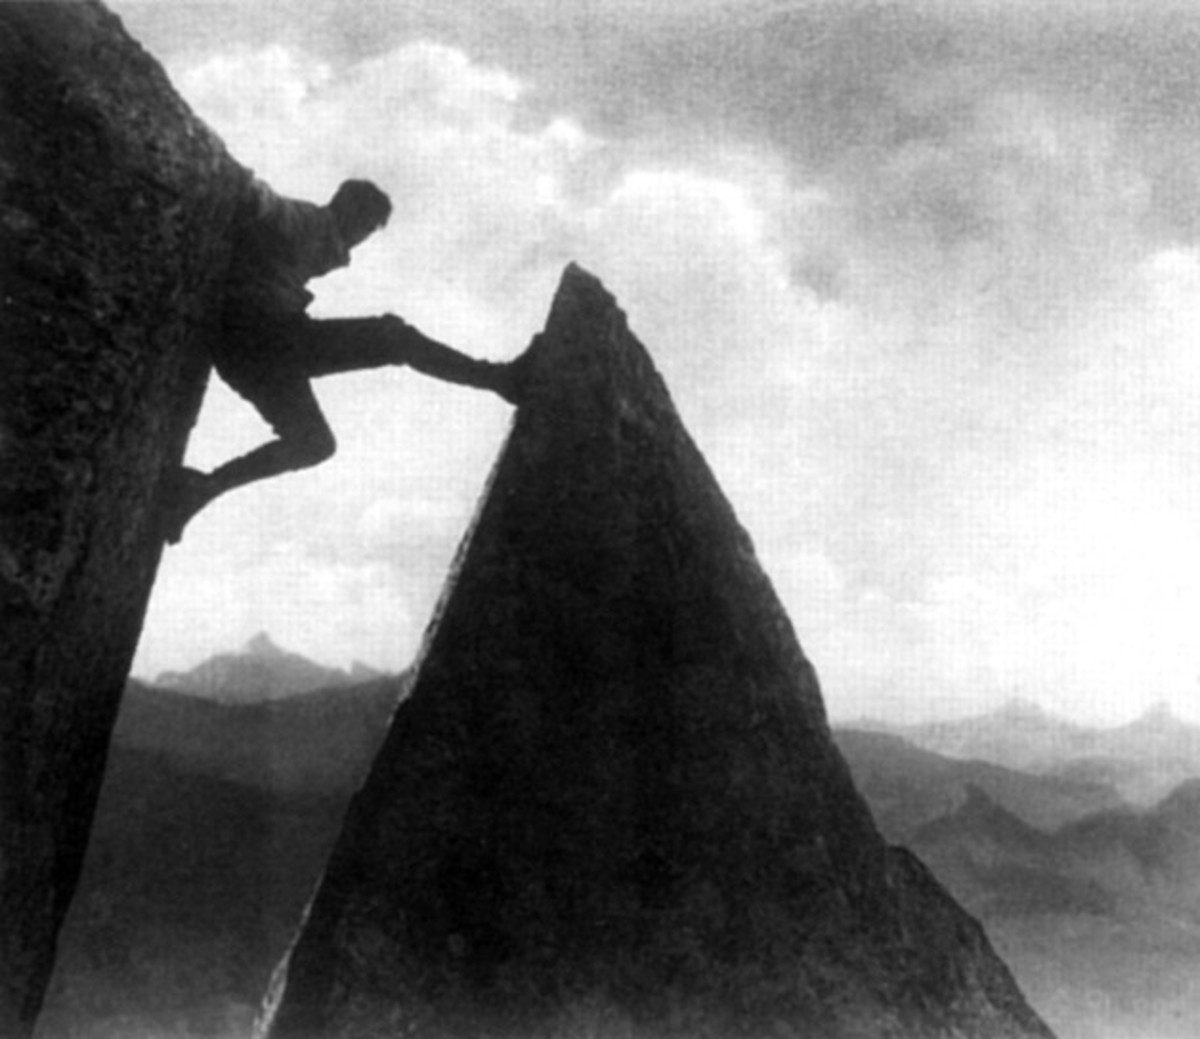 """Mountain of Destiny"" (1924) featuring Lewis Trenker, who Leni would use for her own personal gain."